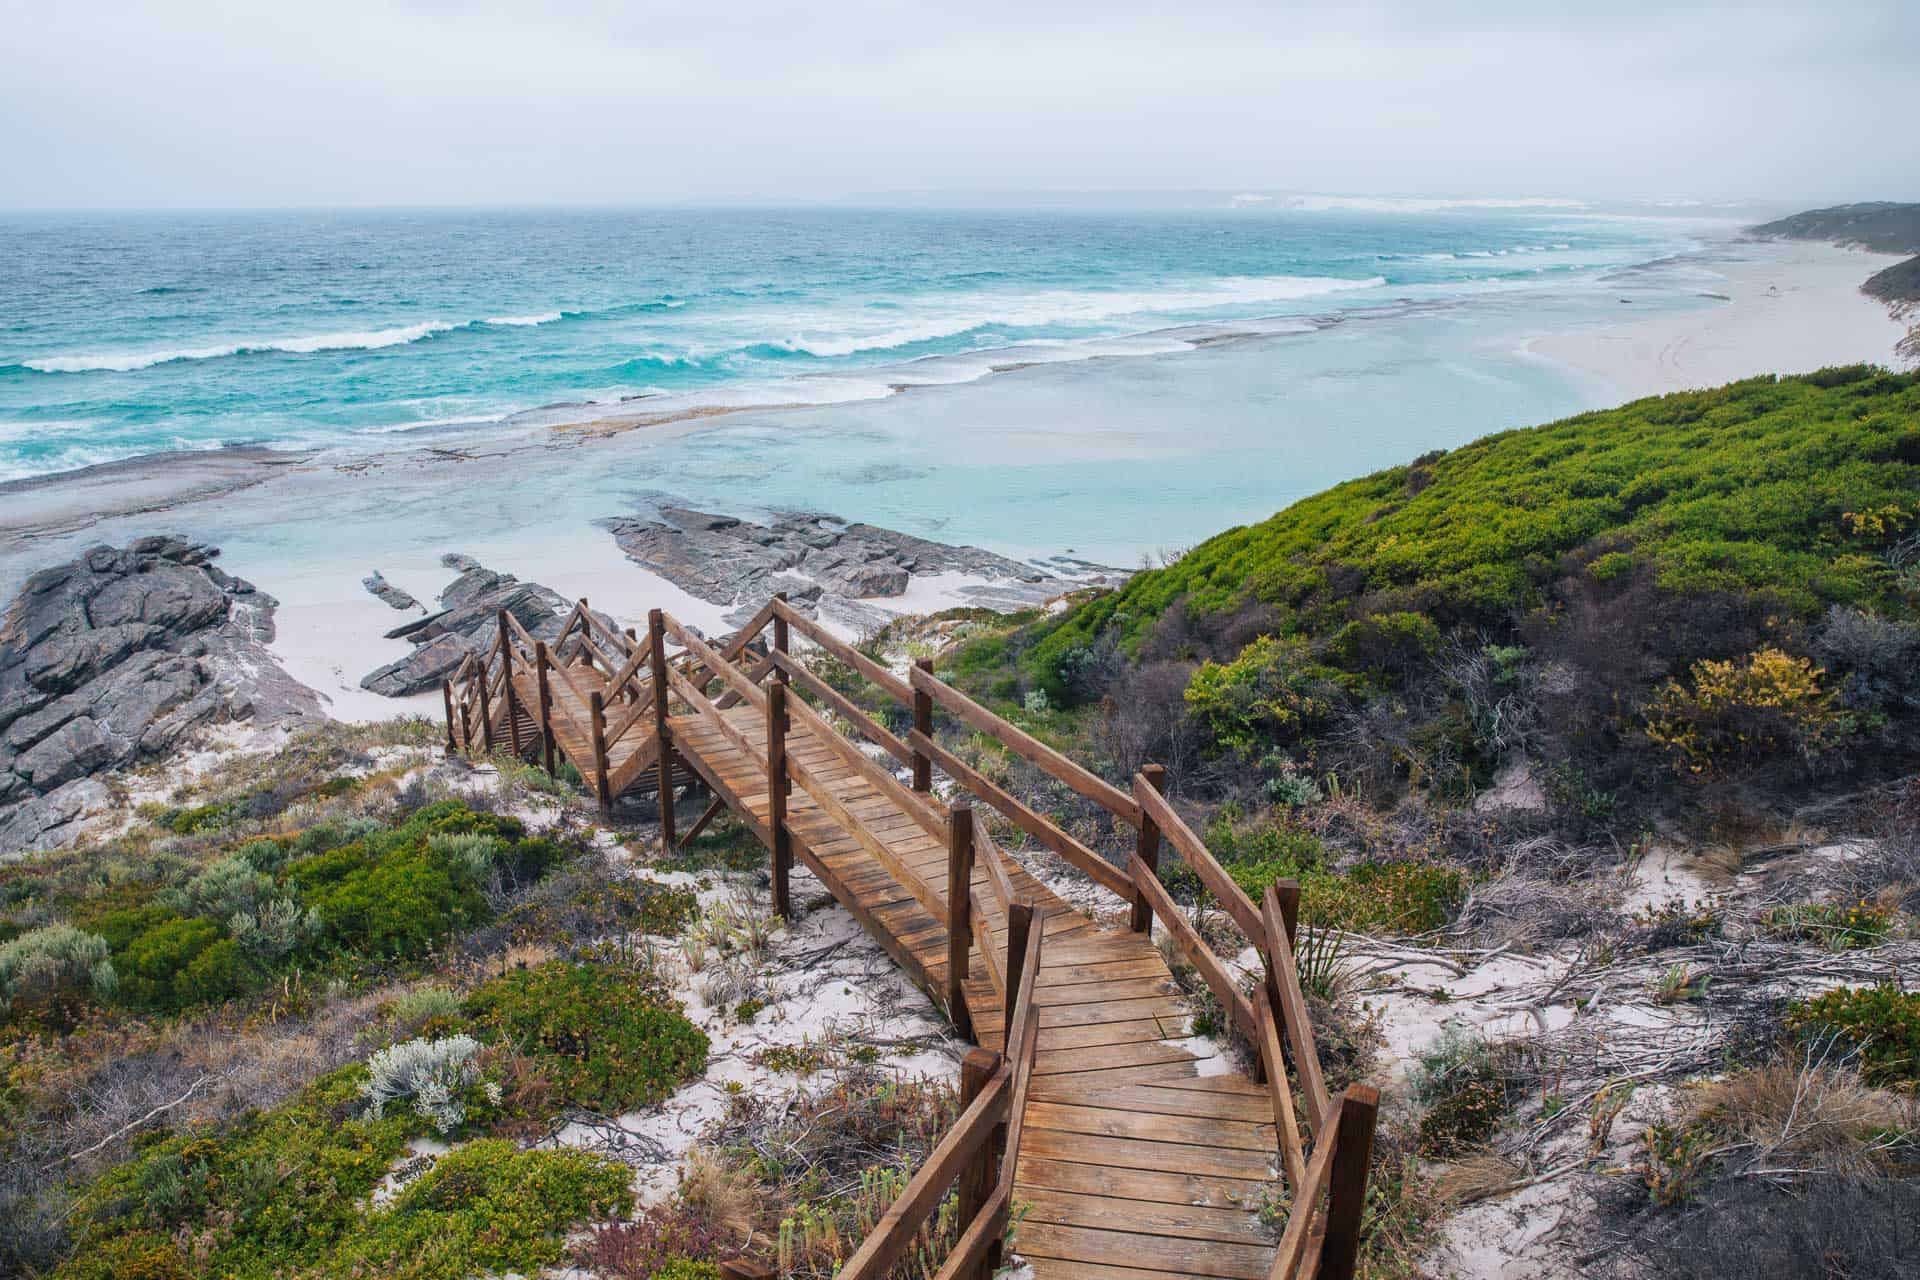 things to do in esperance, what to do in esperance, esperance things to do, esperance attractions